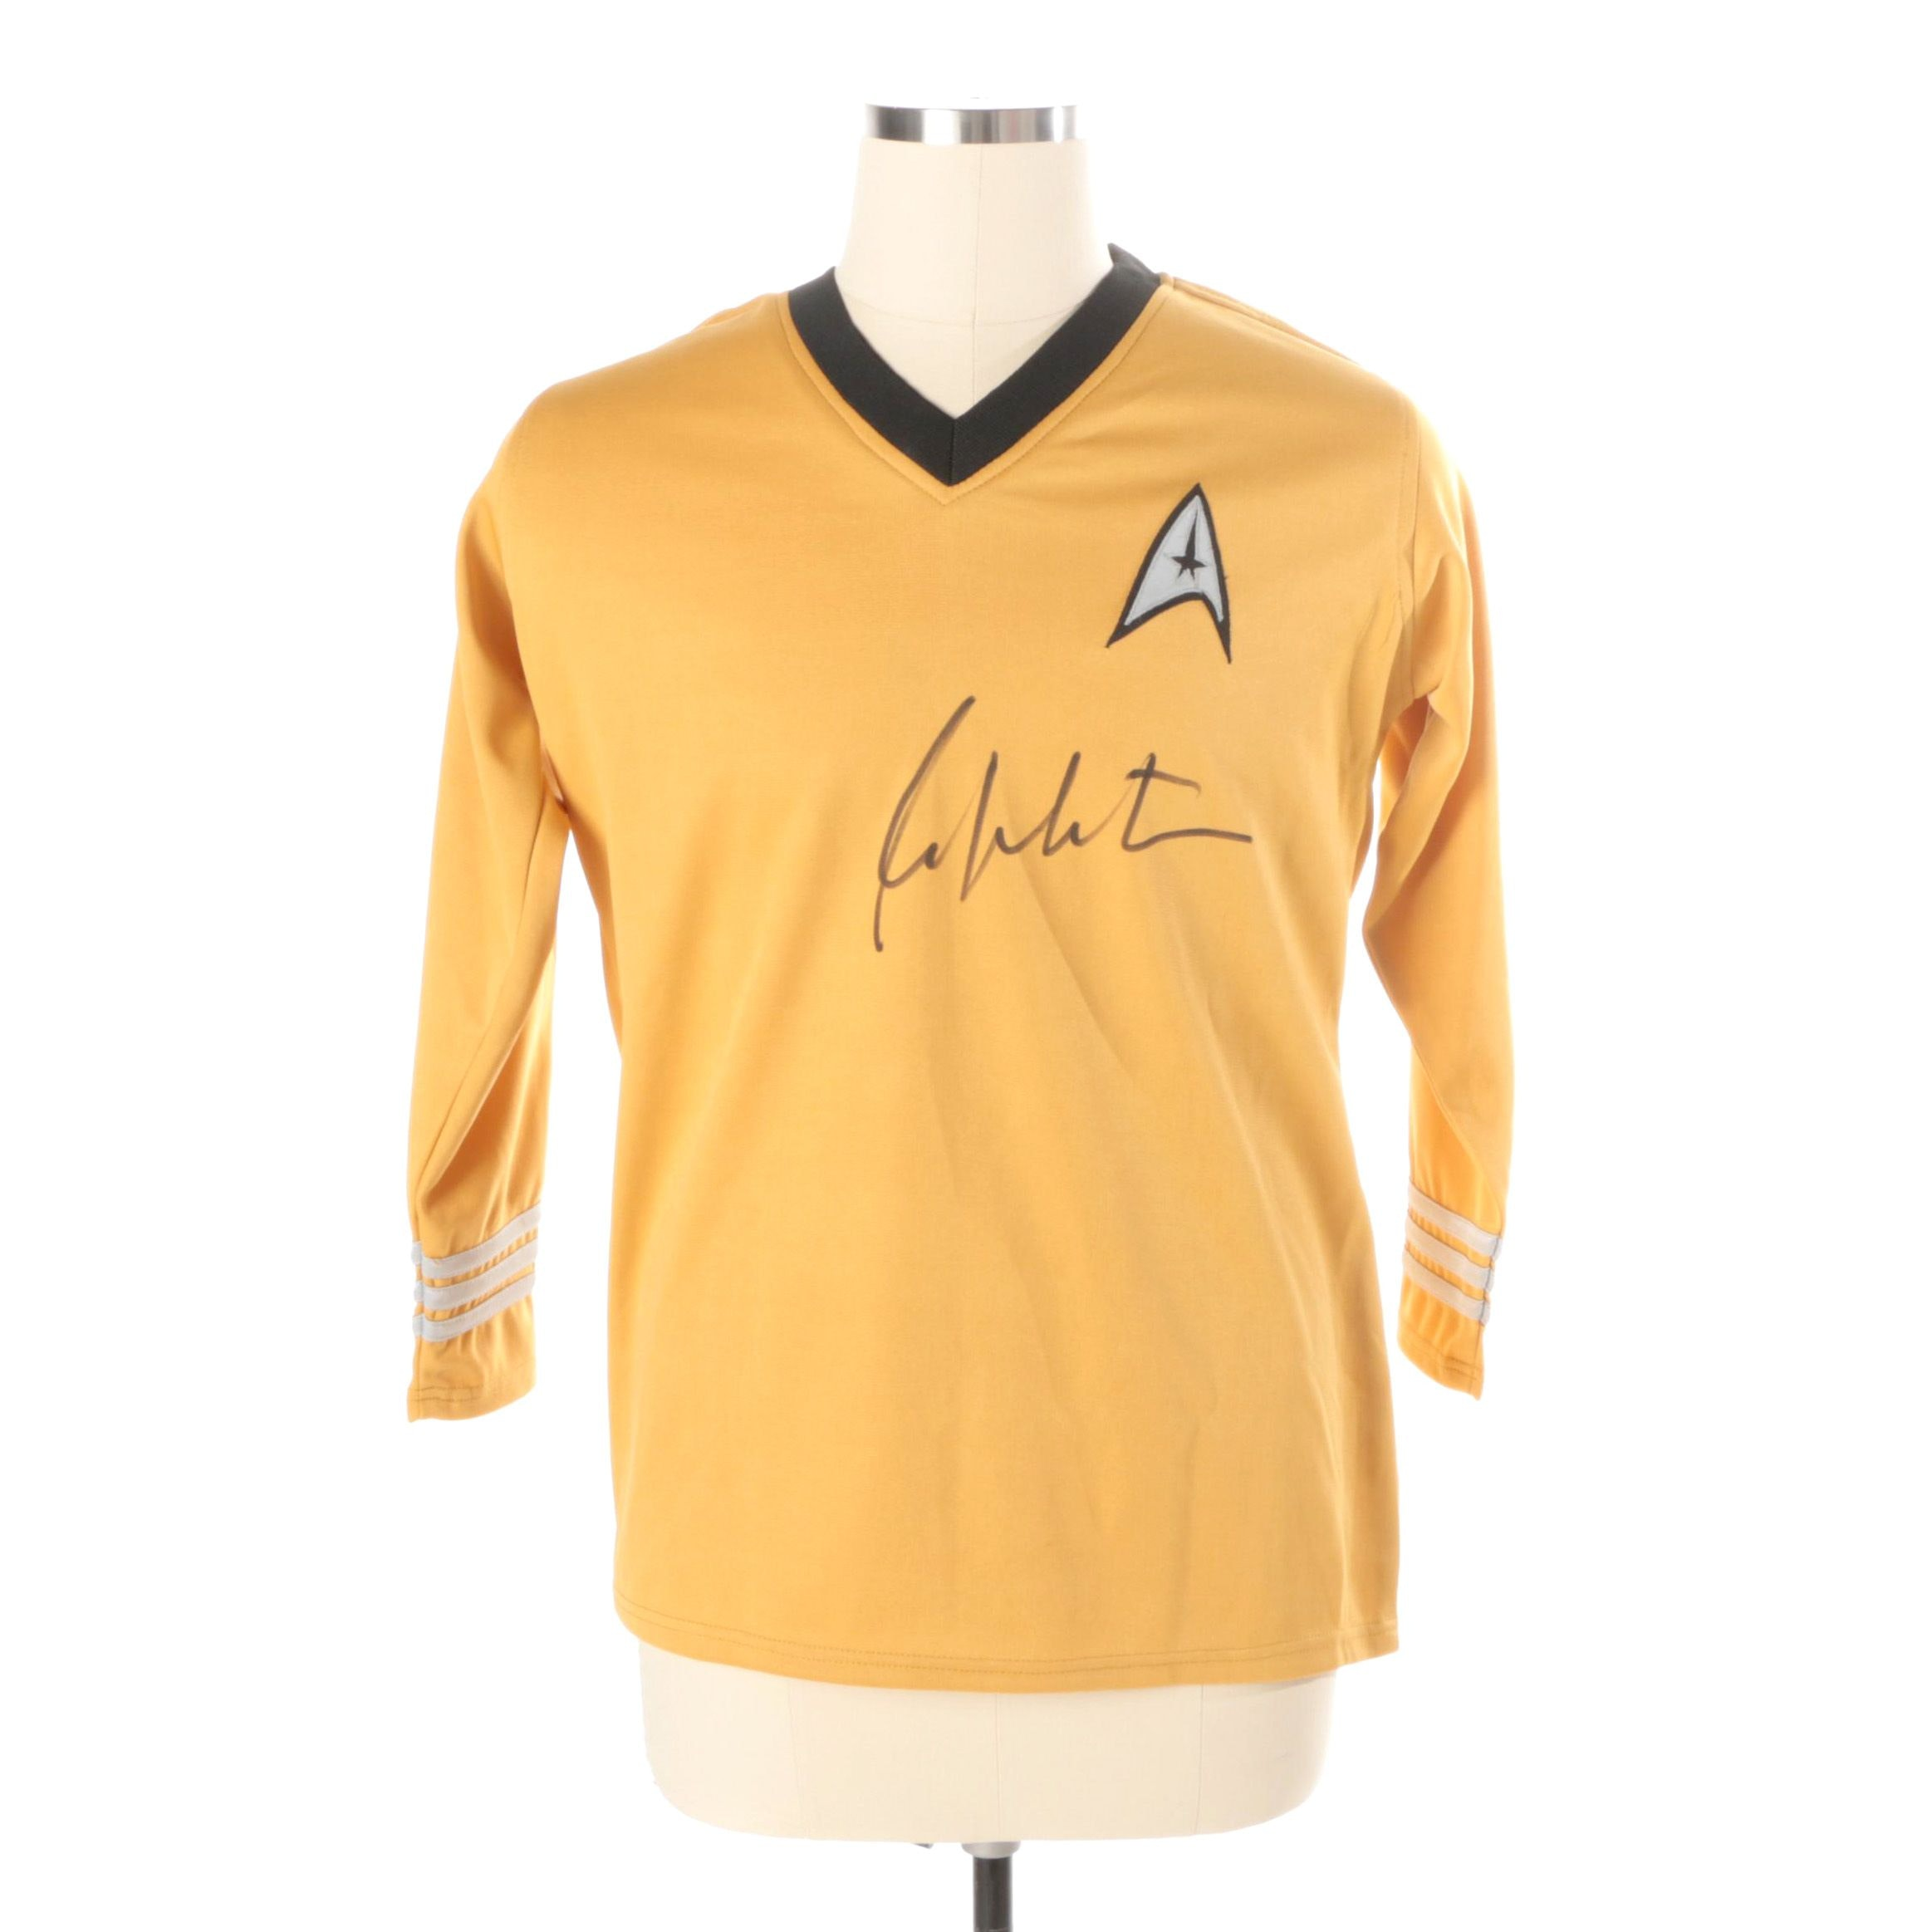 William Shatner Autographed Star Trek Shirt JSA COA